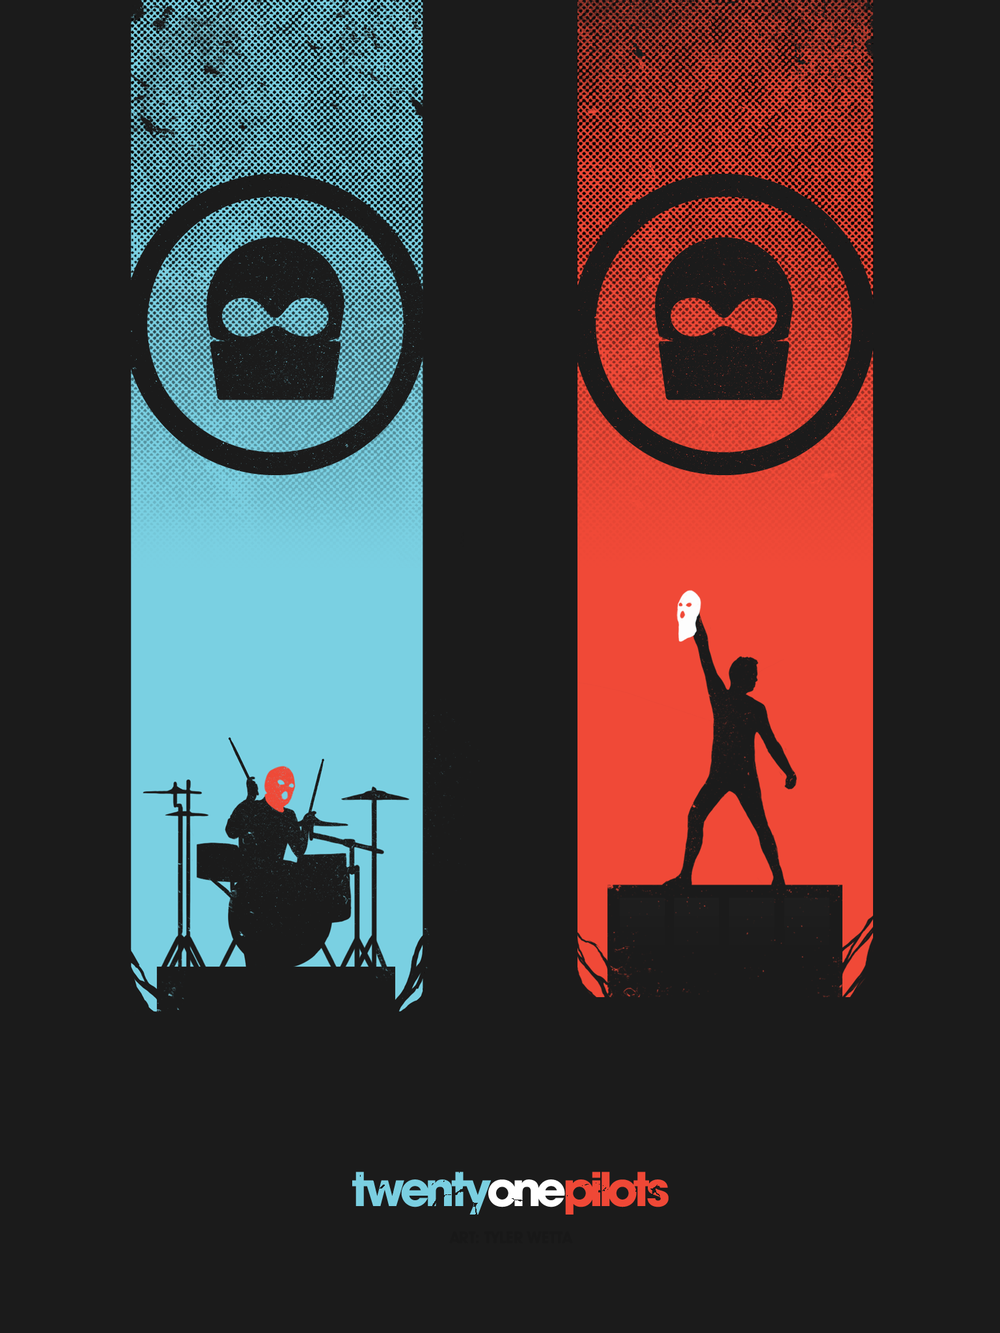 Kitchen Sink Twenty One Pilots Wallpaper twenty one pilots informative speec